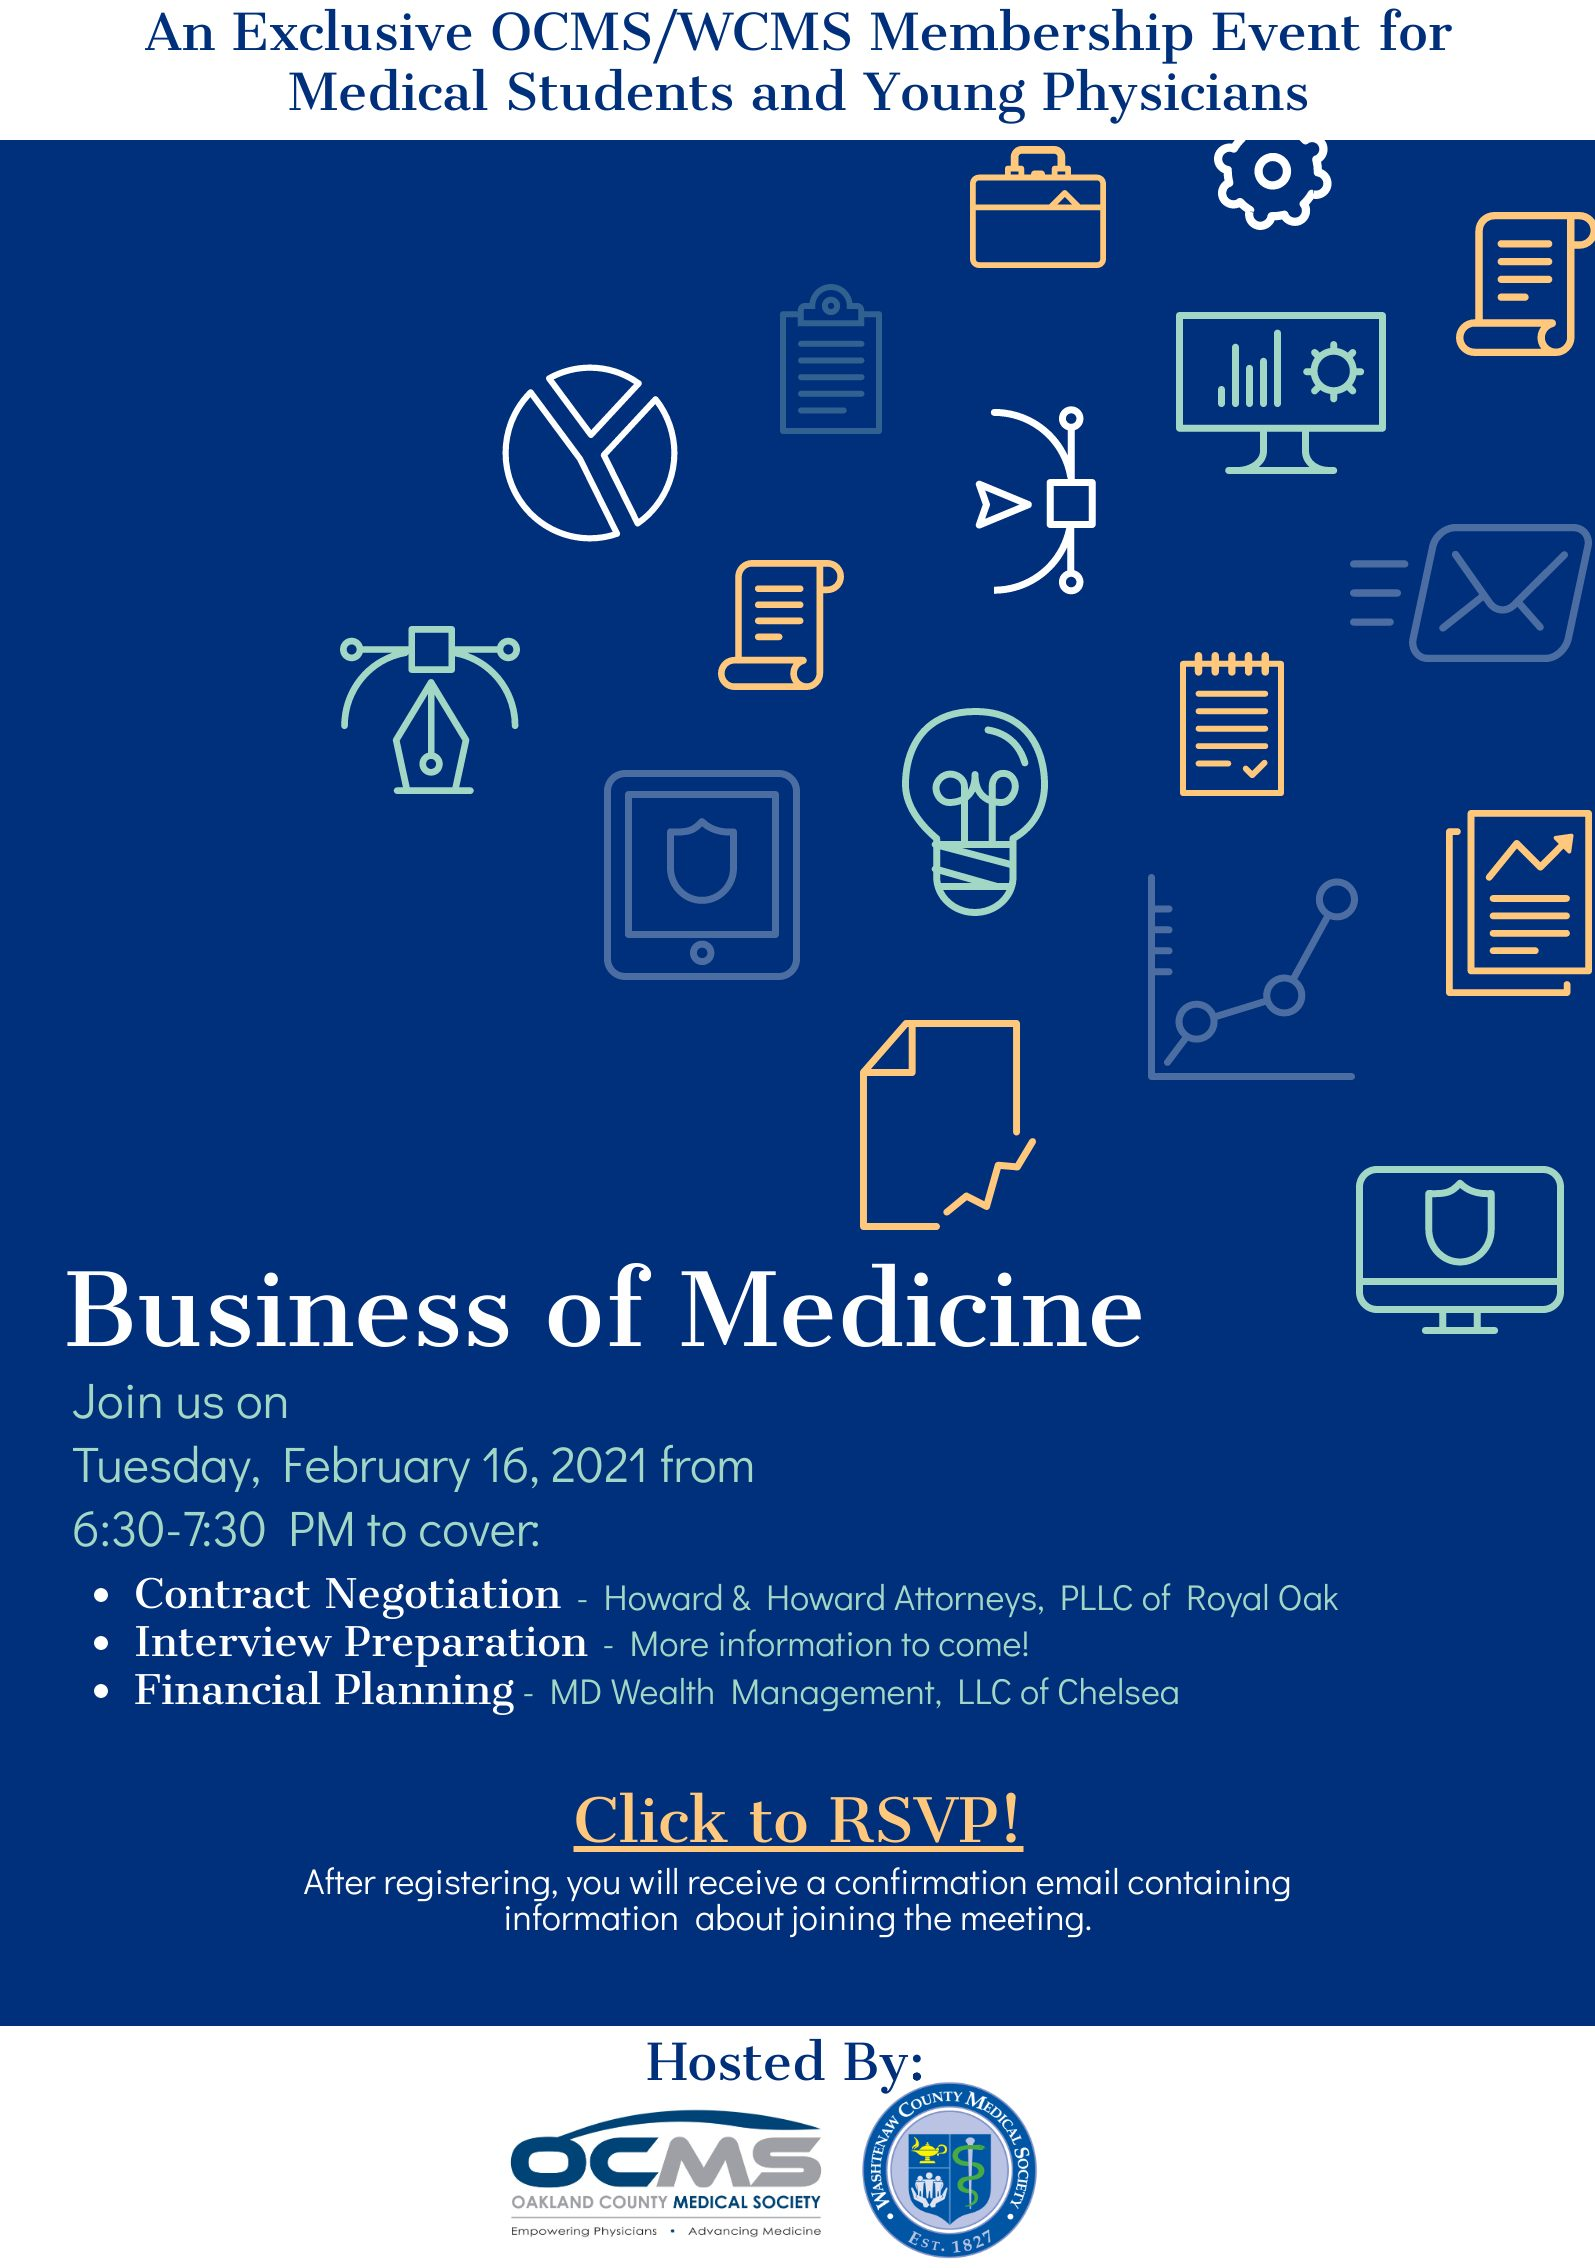 Business of Medicine: WCMS/OCMS Event for Medical Students and Young Physicians @ Virtual Meeting